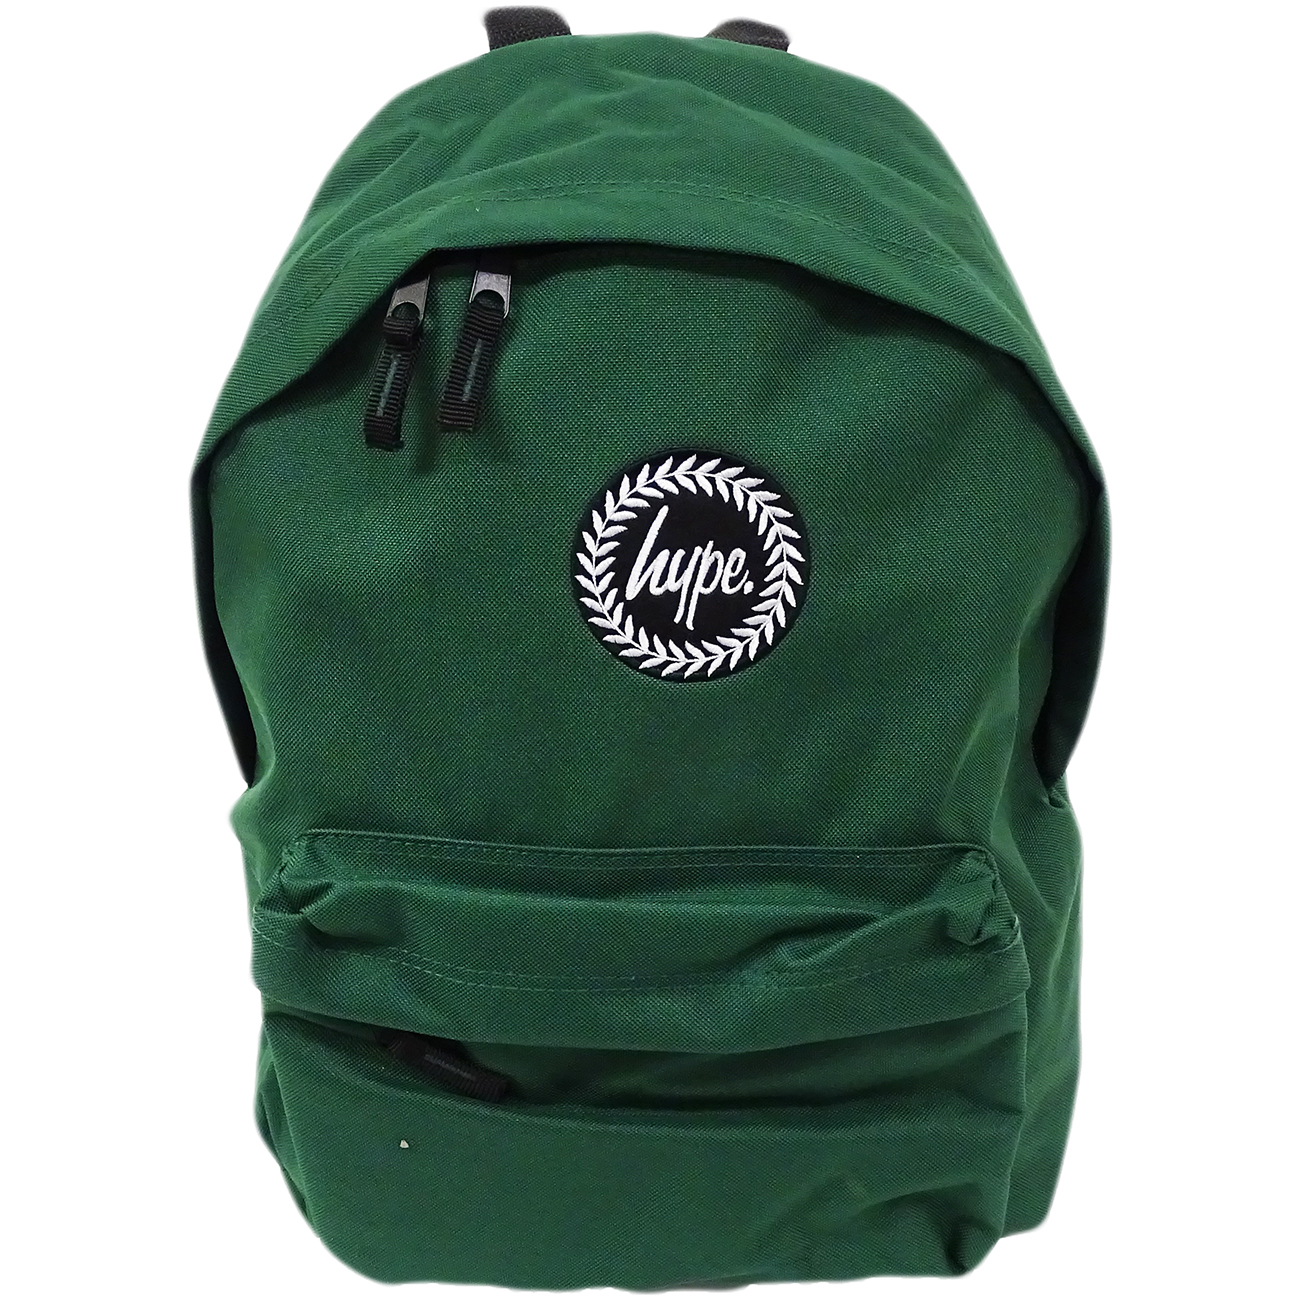 Just Hype Backpack Plain Forest Green Bag